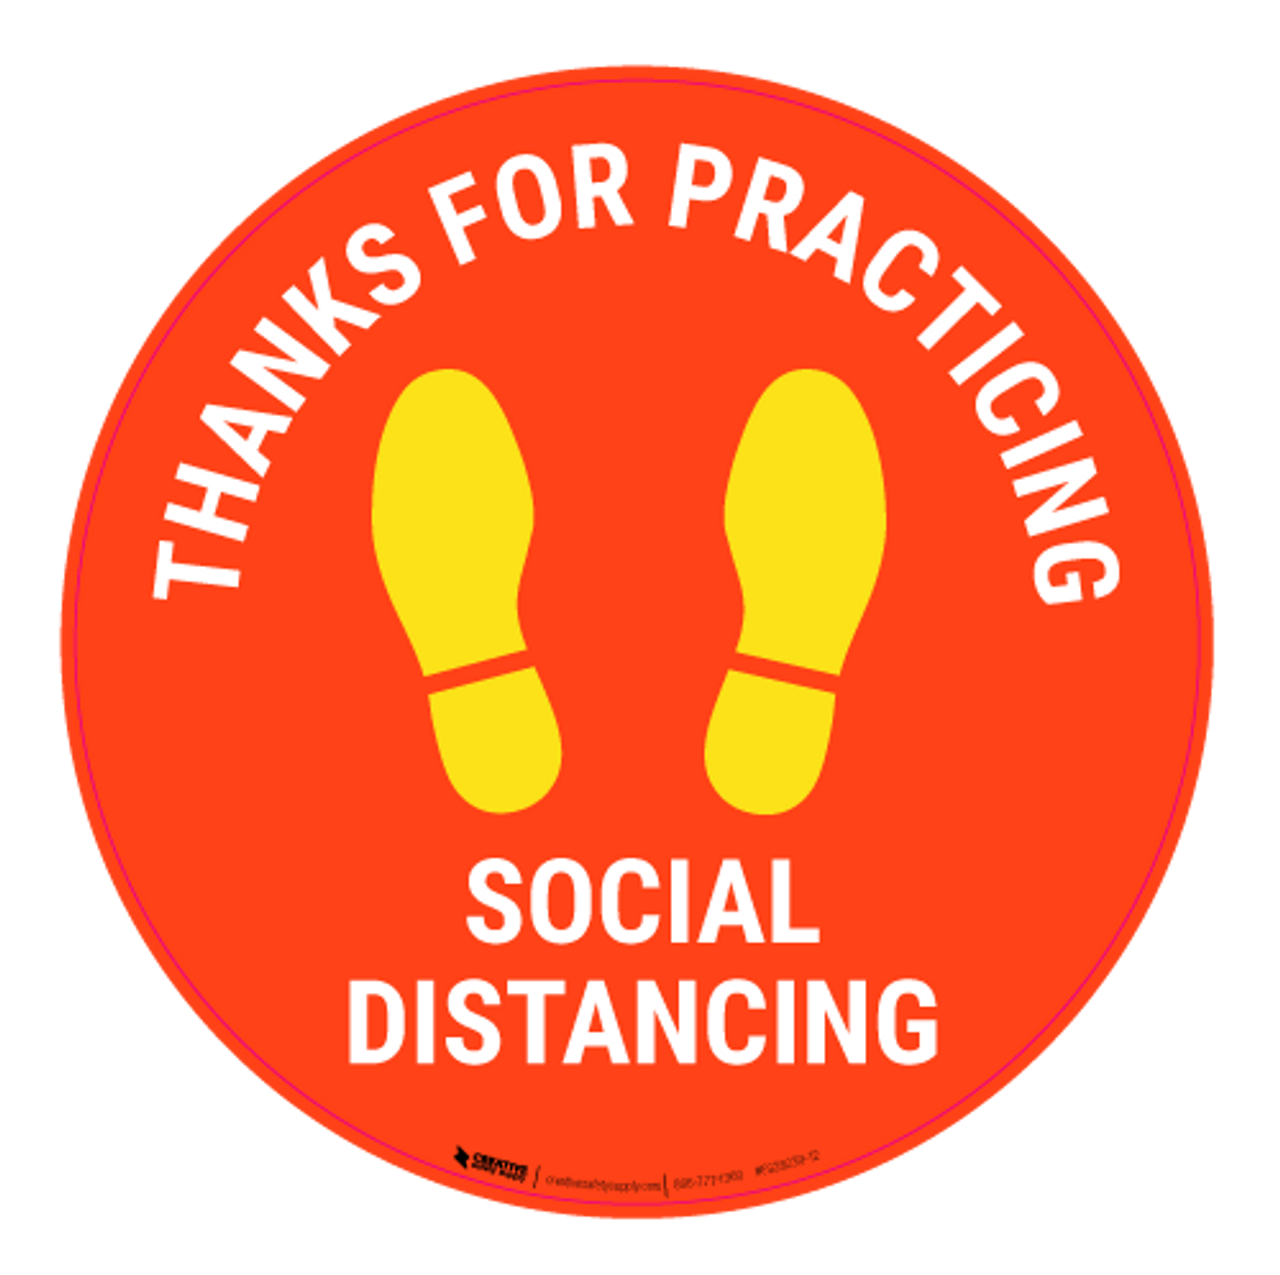 illustration of a circle with footprints inside that says 'thanks for practicing social distancing'